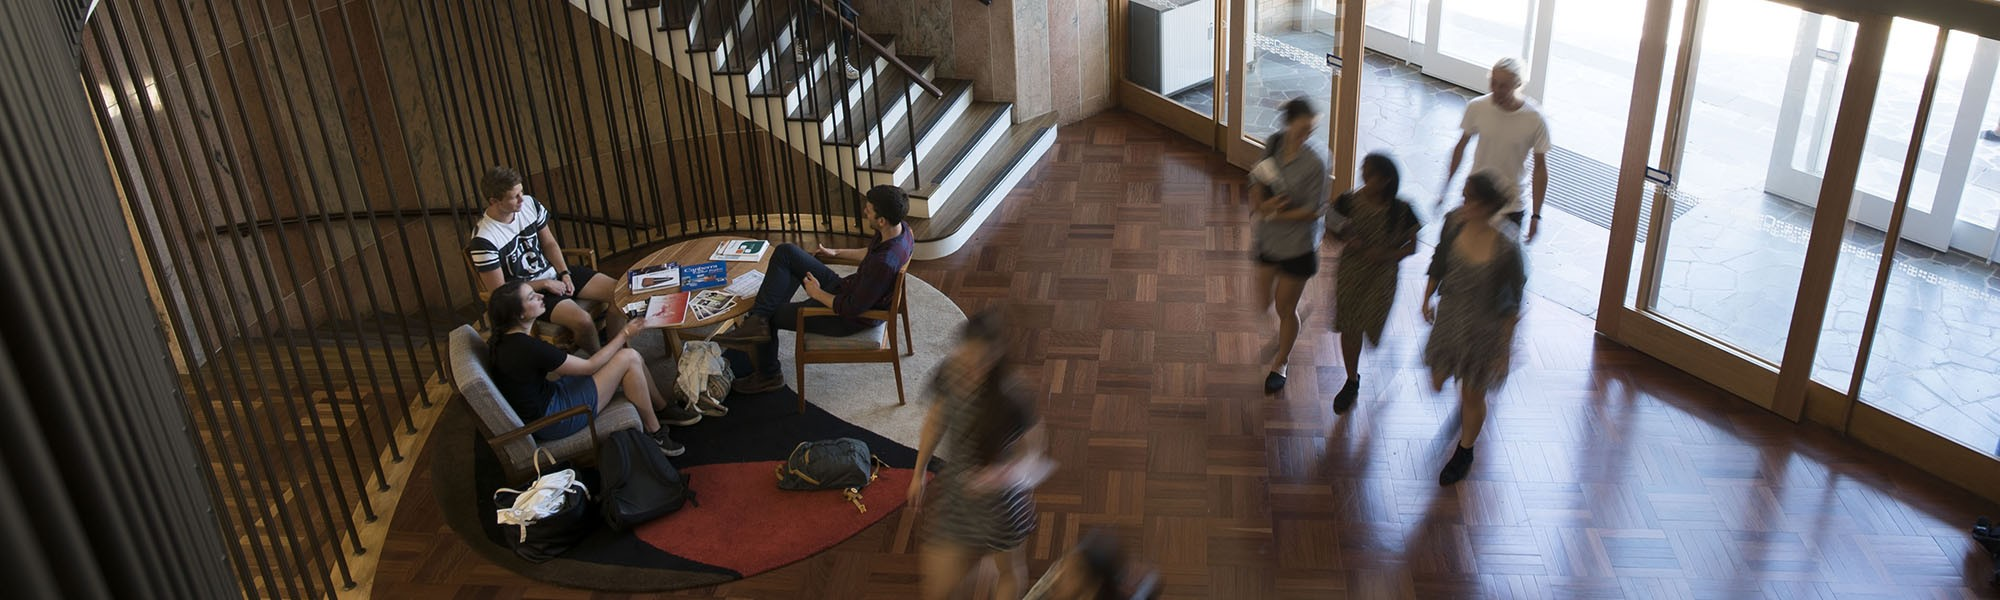 Large foyer with a group of students sitting and talking